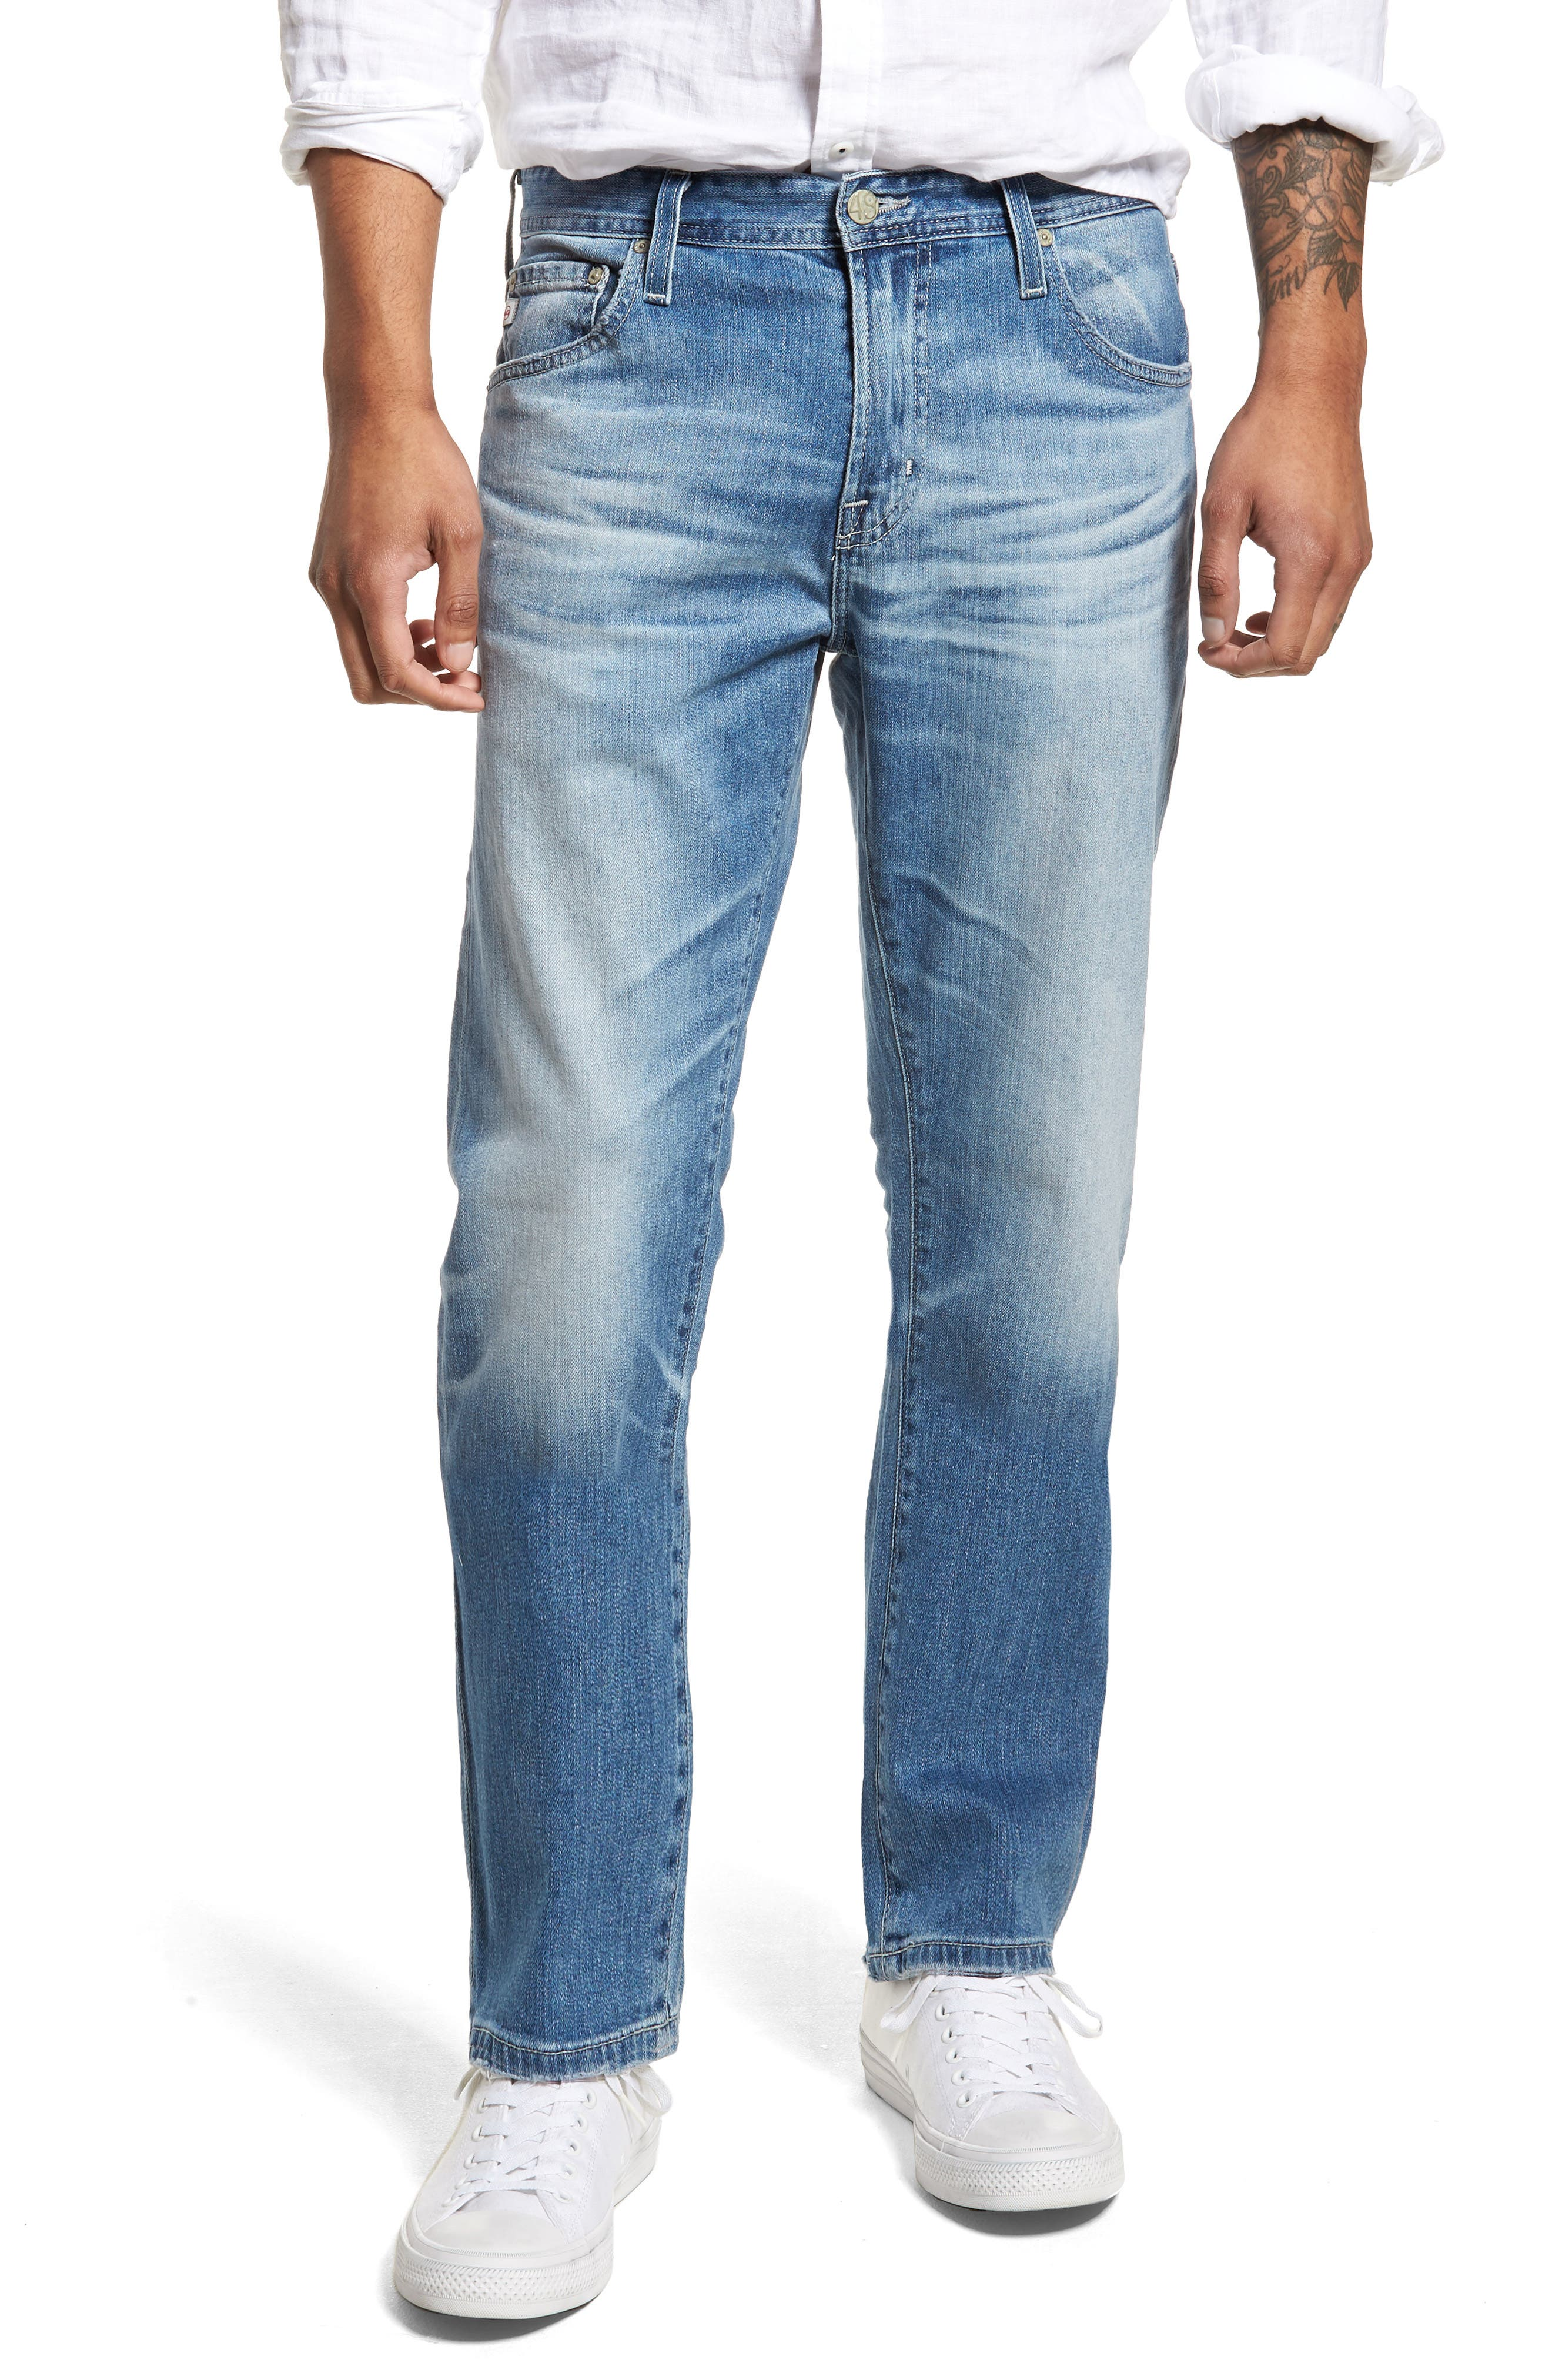 Ives Straight Leg Jeans,                         Main,                         color, 15 Years Aground